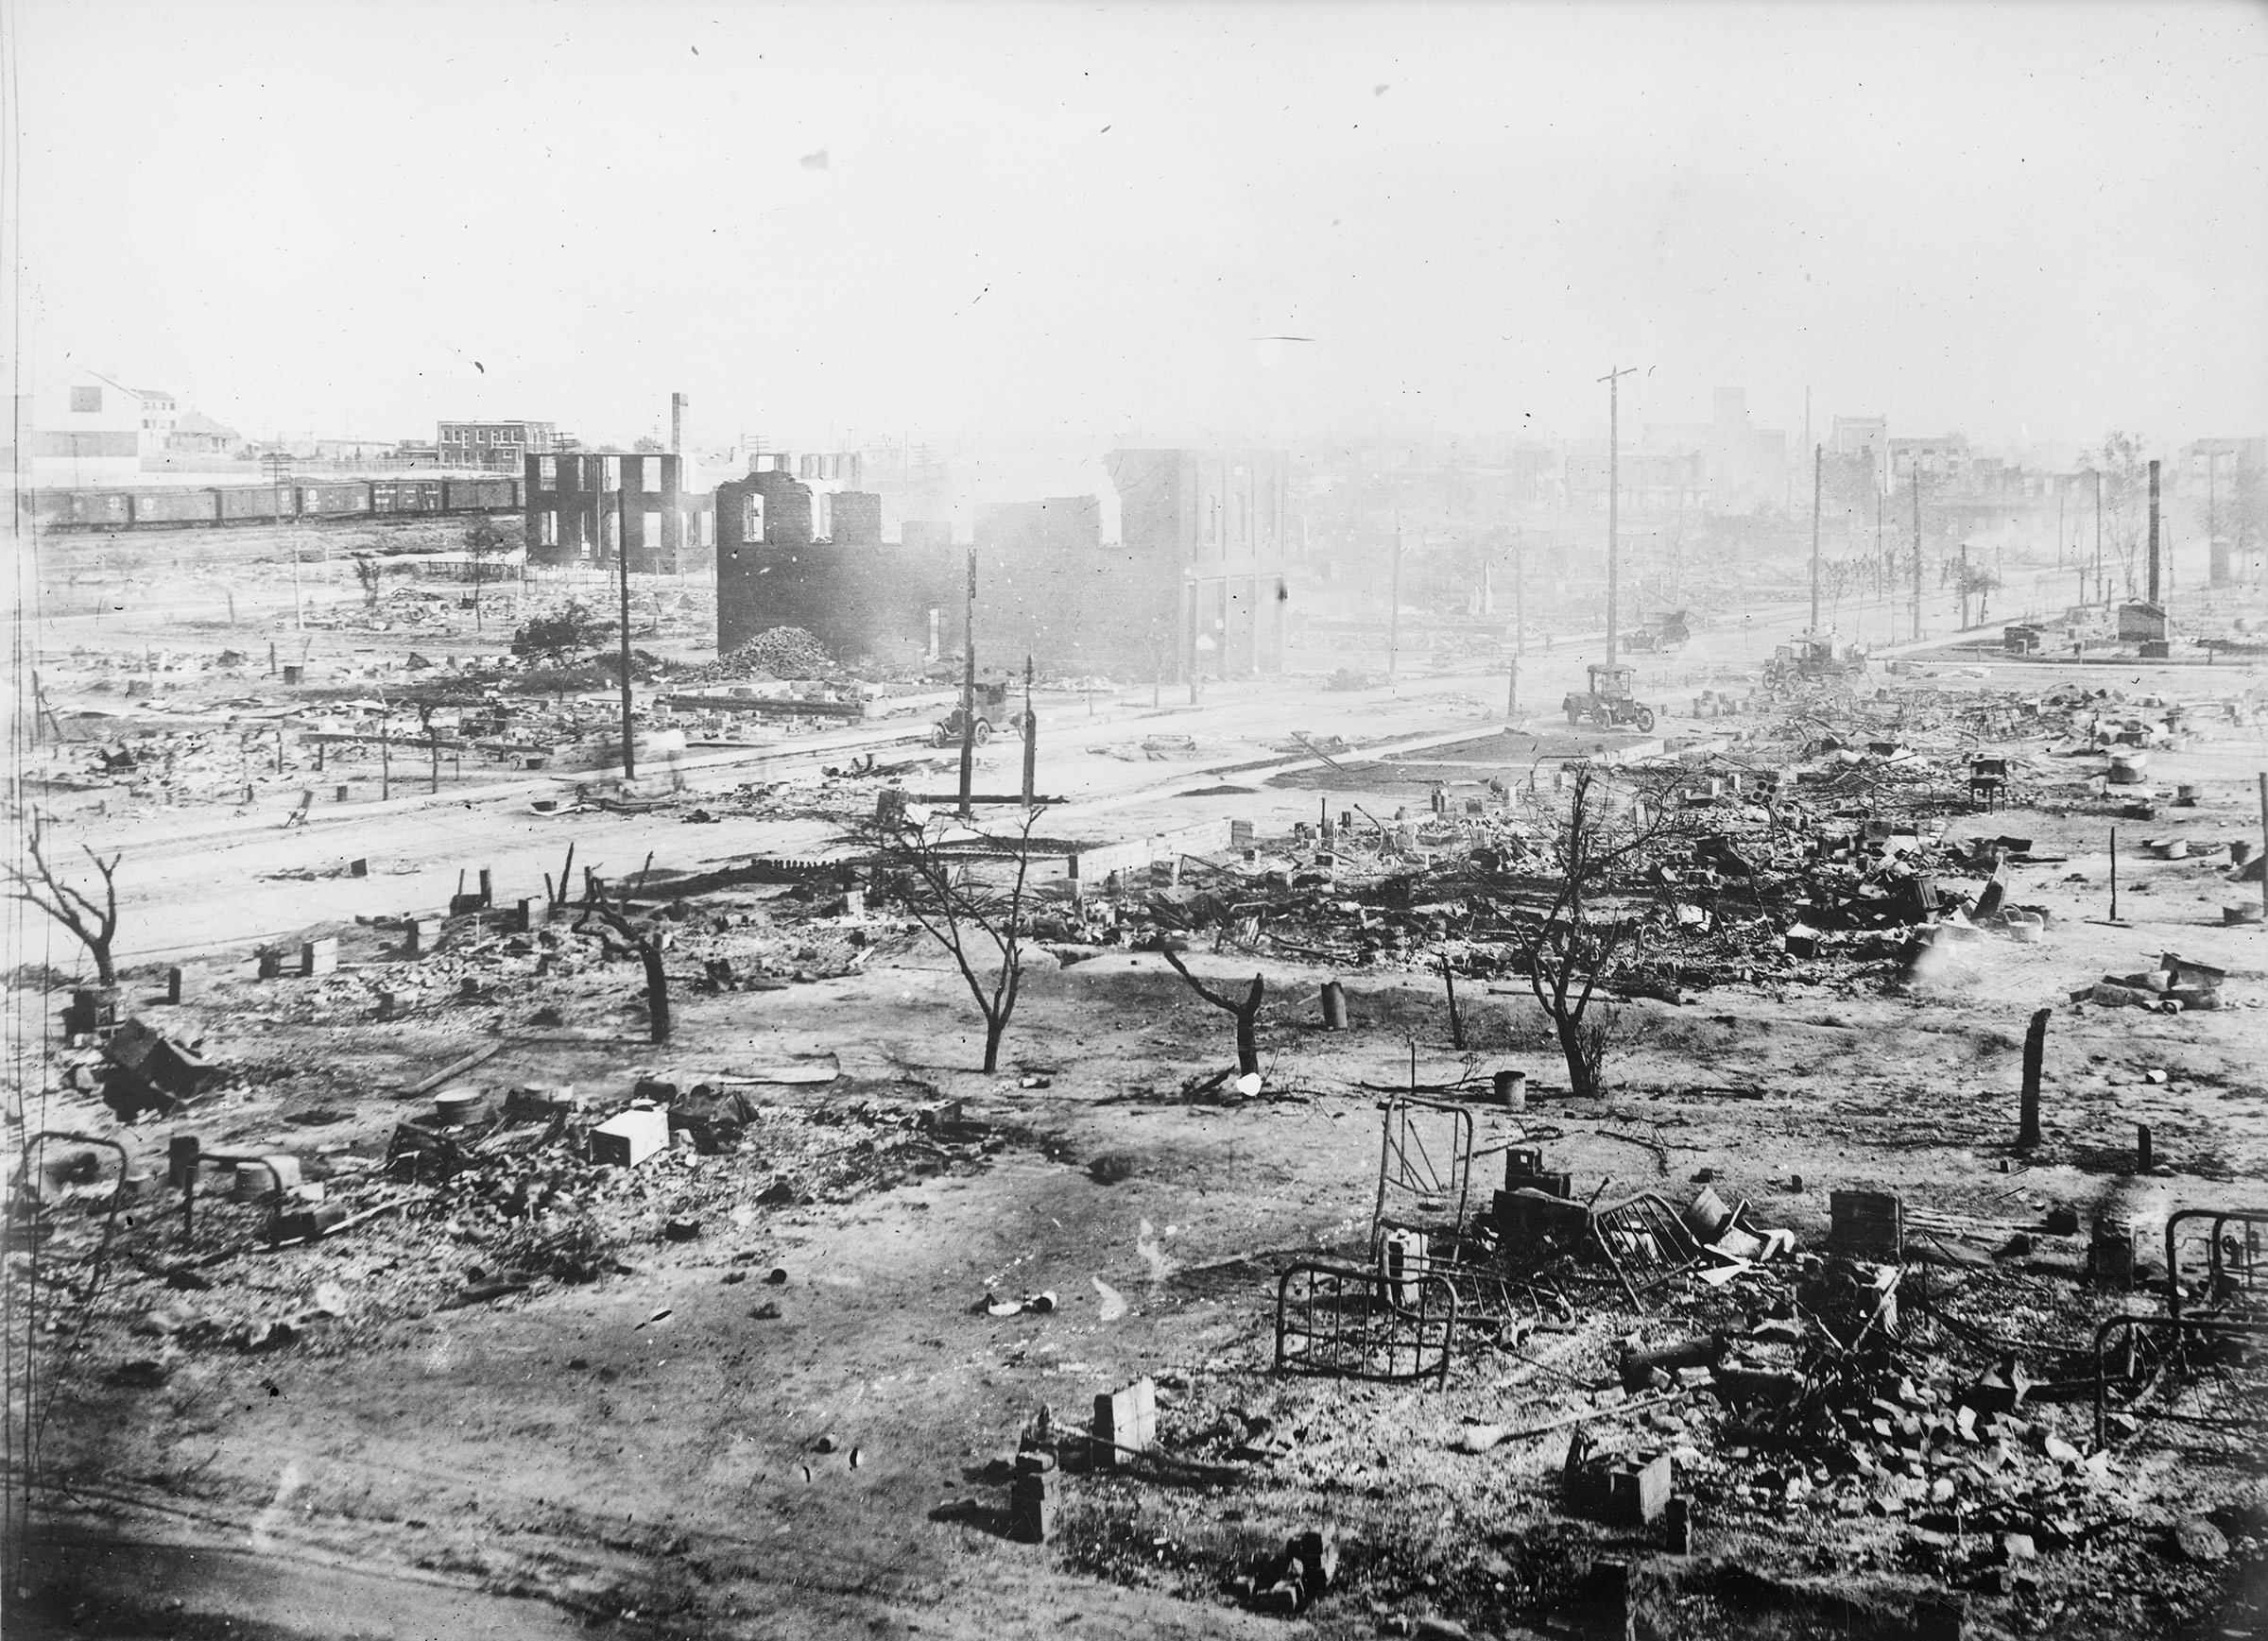 The Greenwood district of Tulsa in 1921, after the Tulsa Race Massacre.